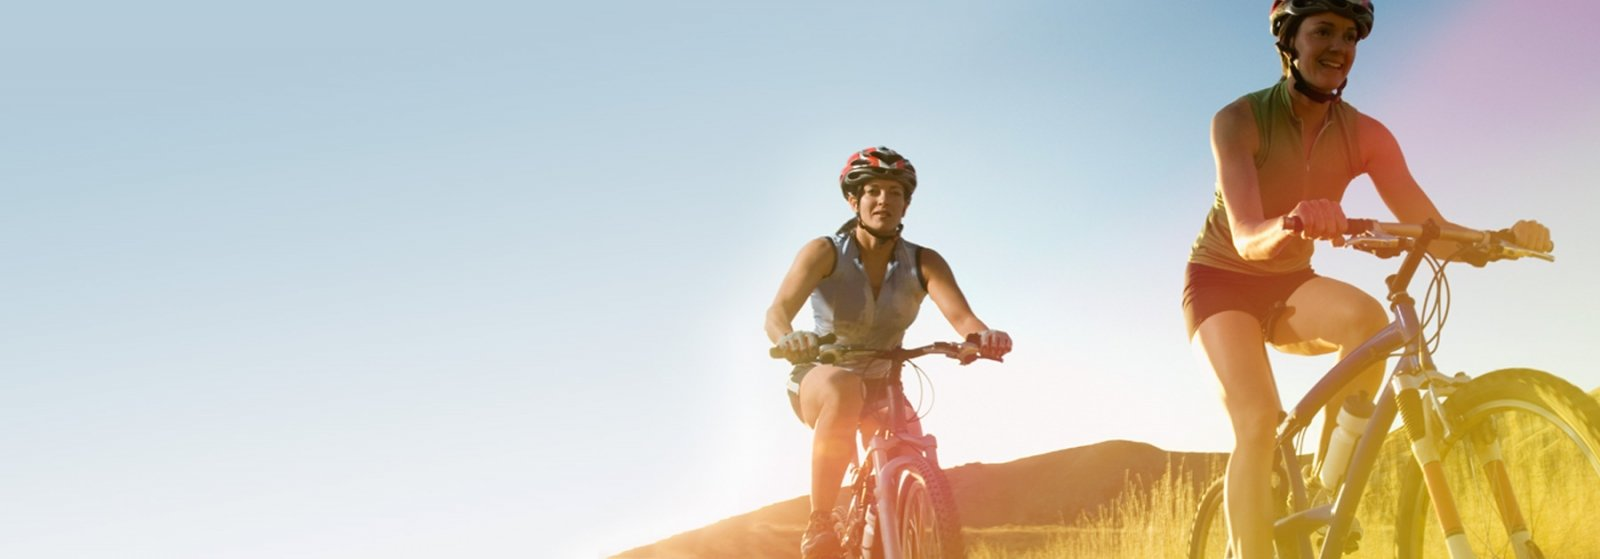 Woman on a mountain bike in the country